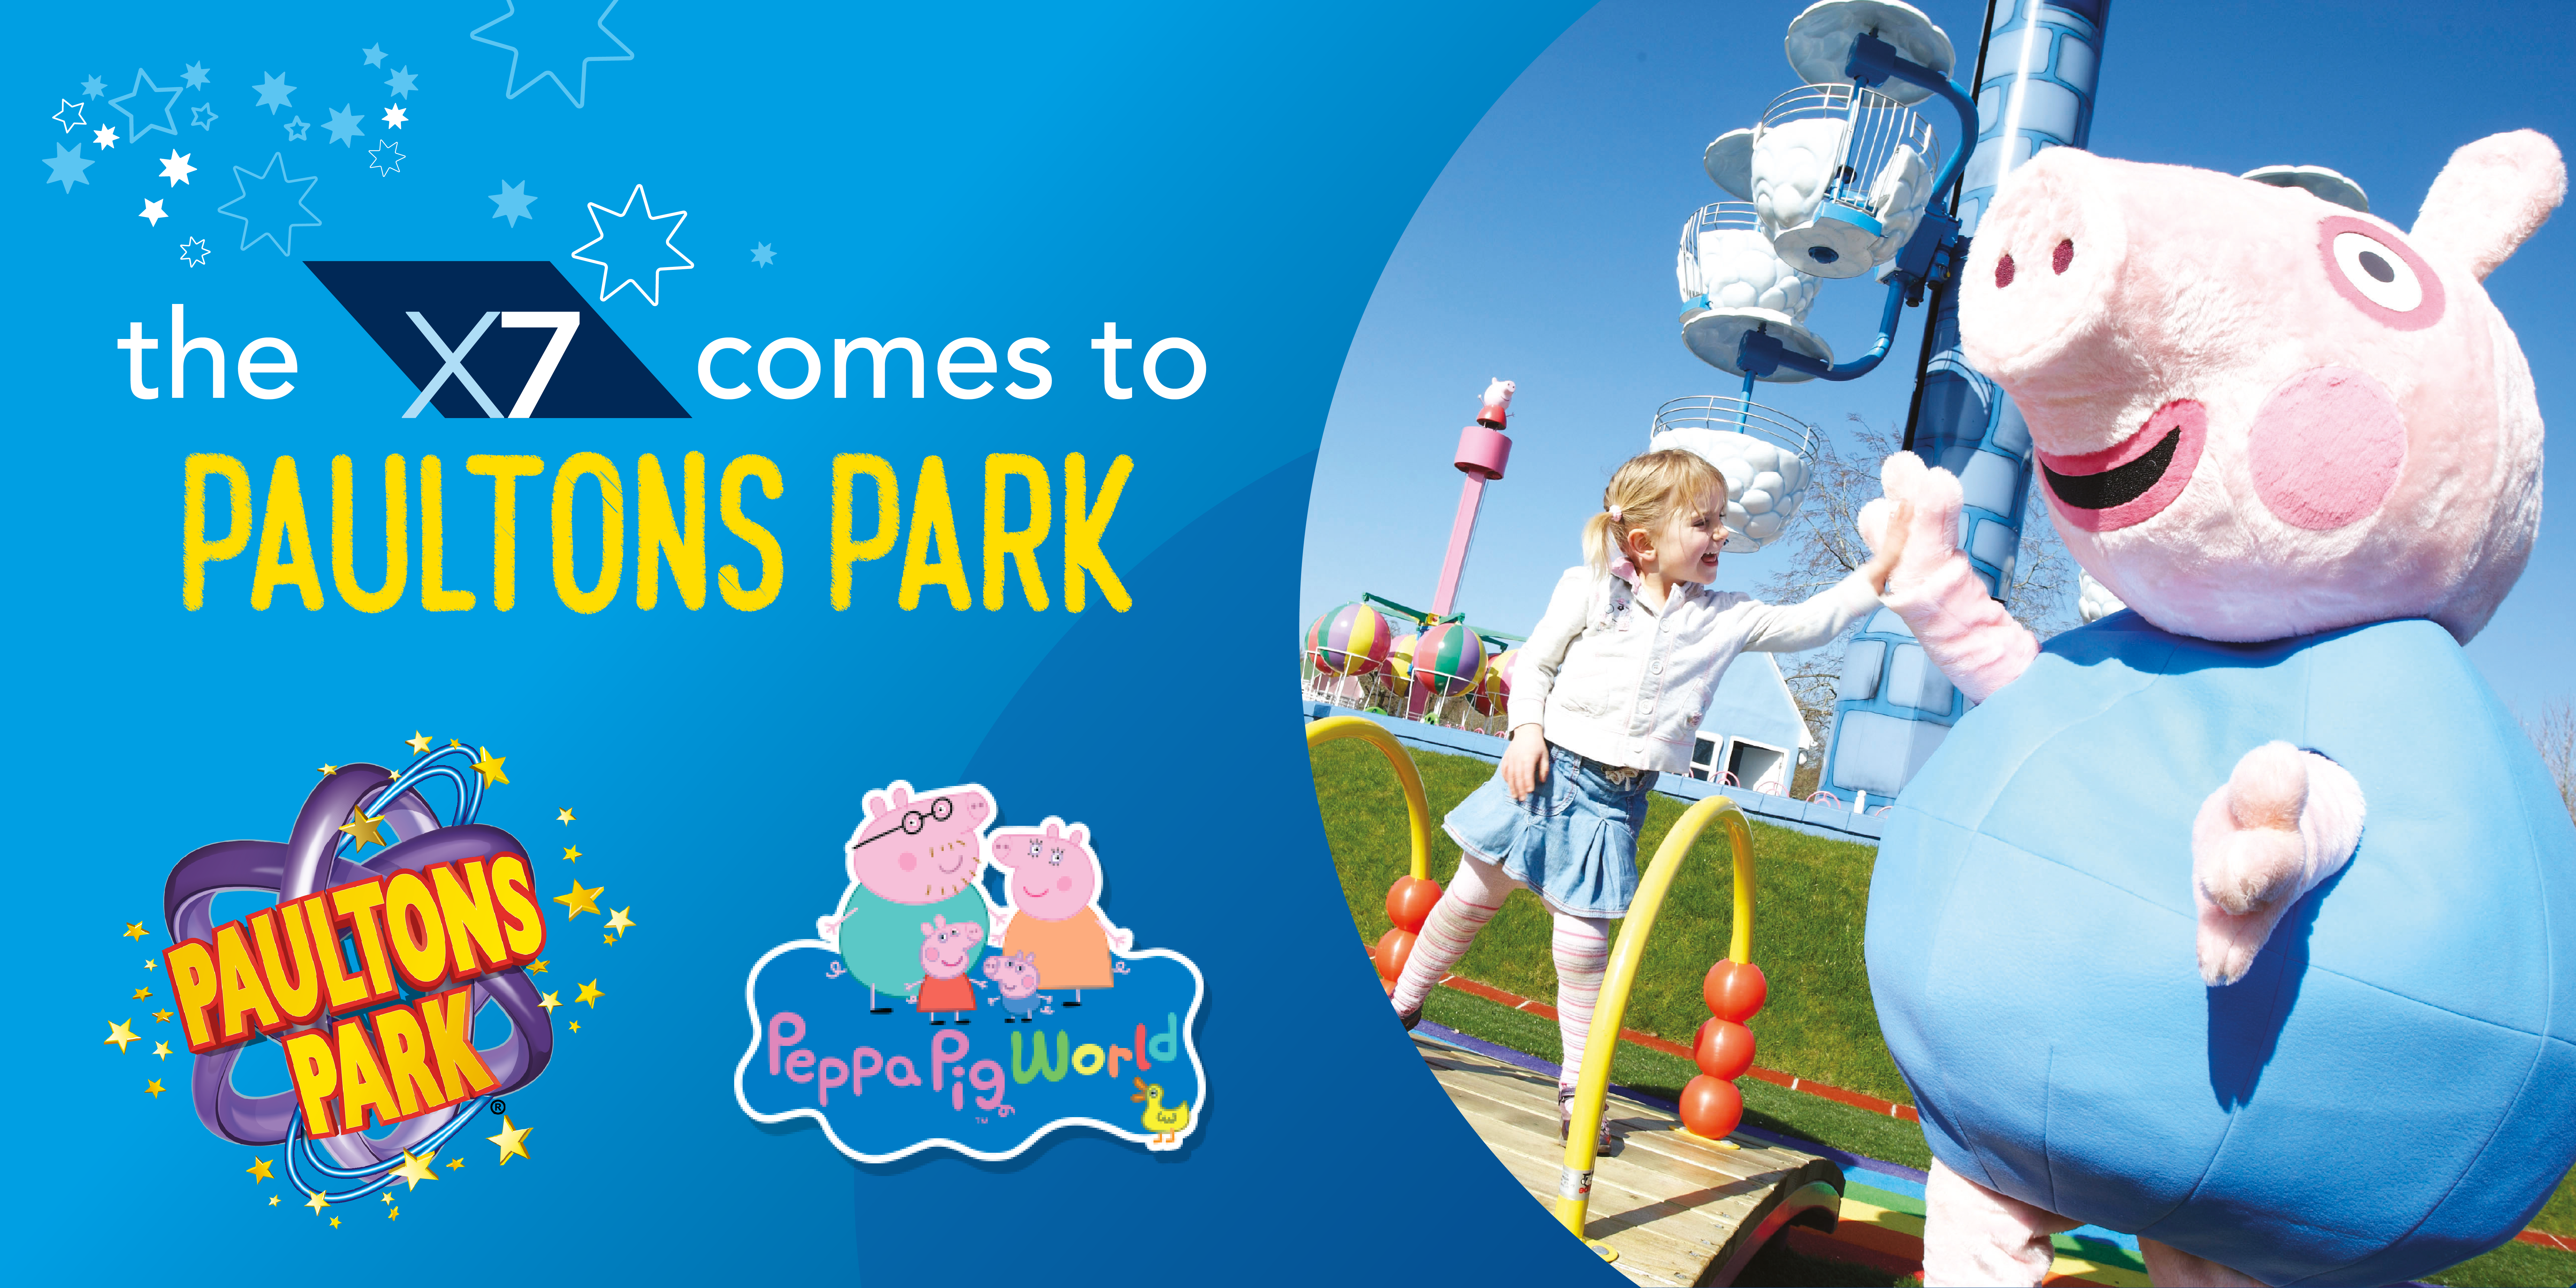 the x7 comes to paultons park with logos and image of george the pig